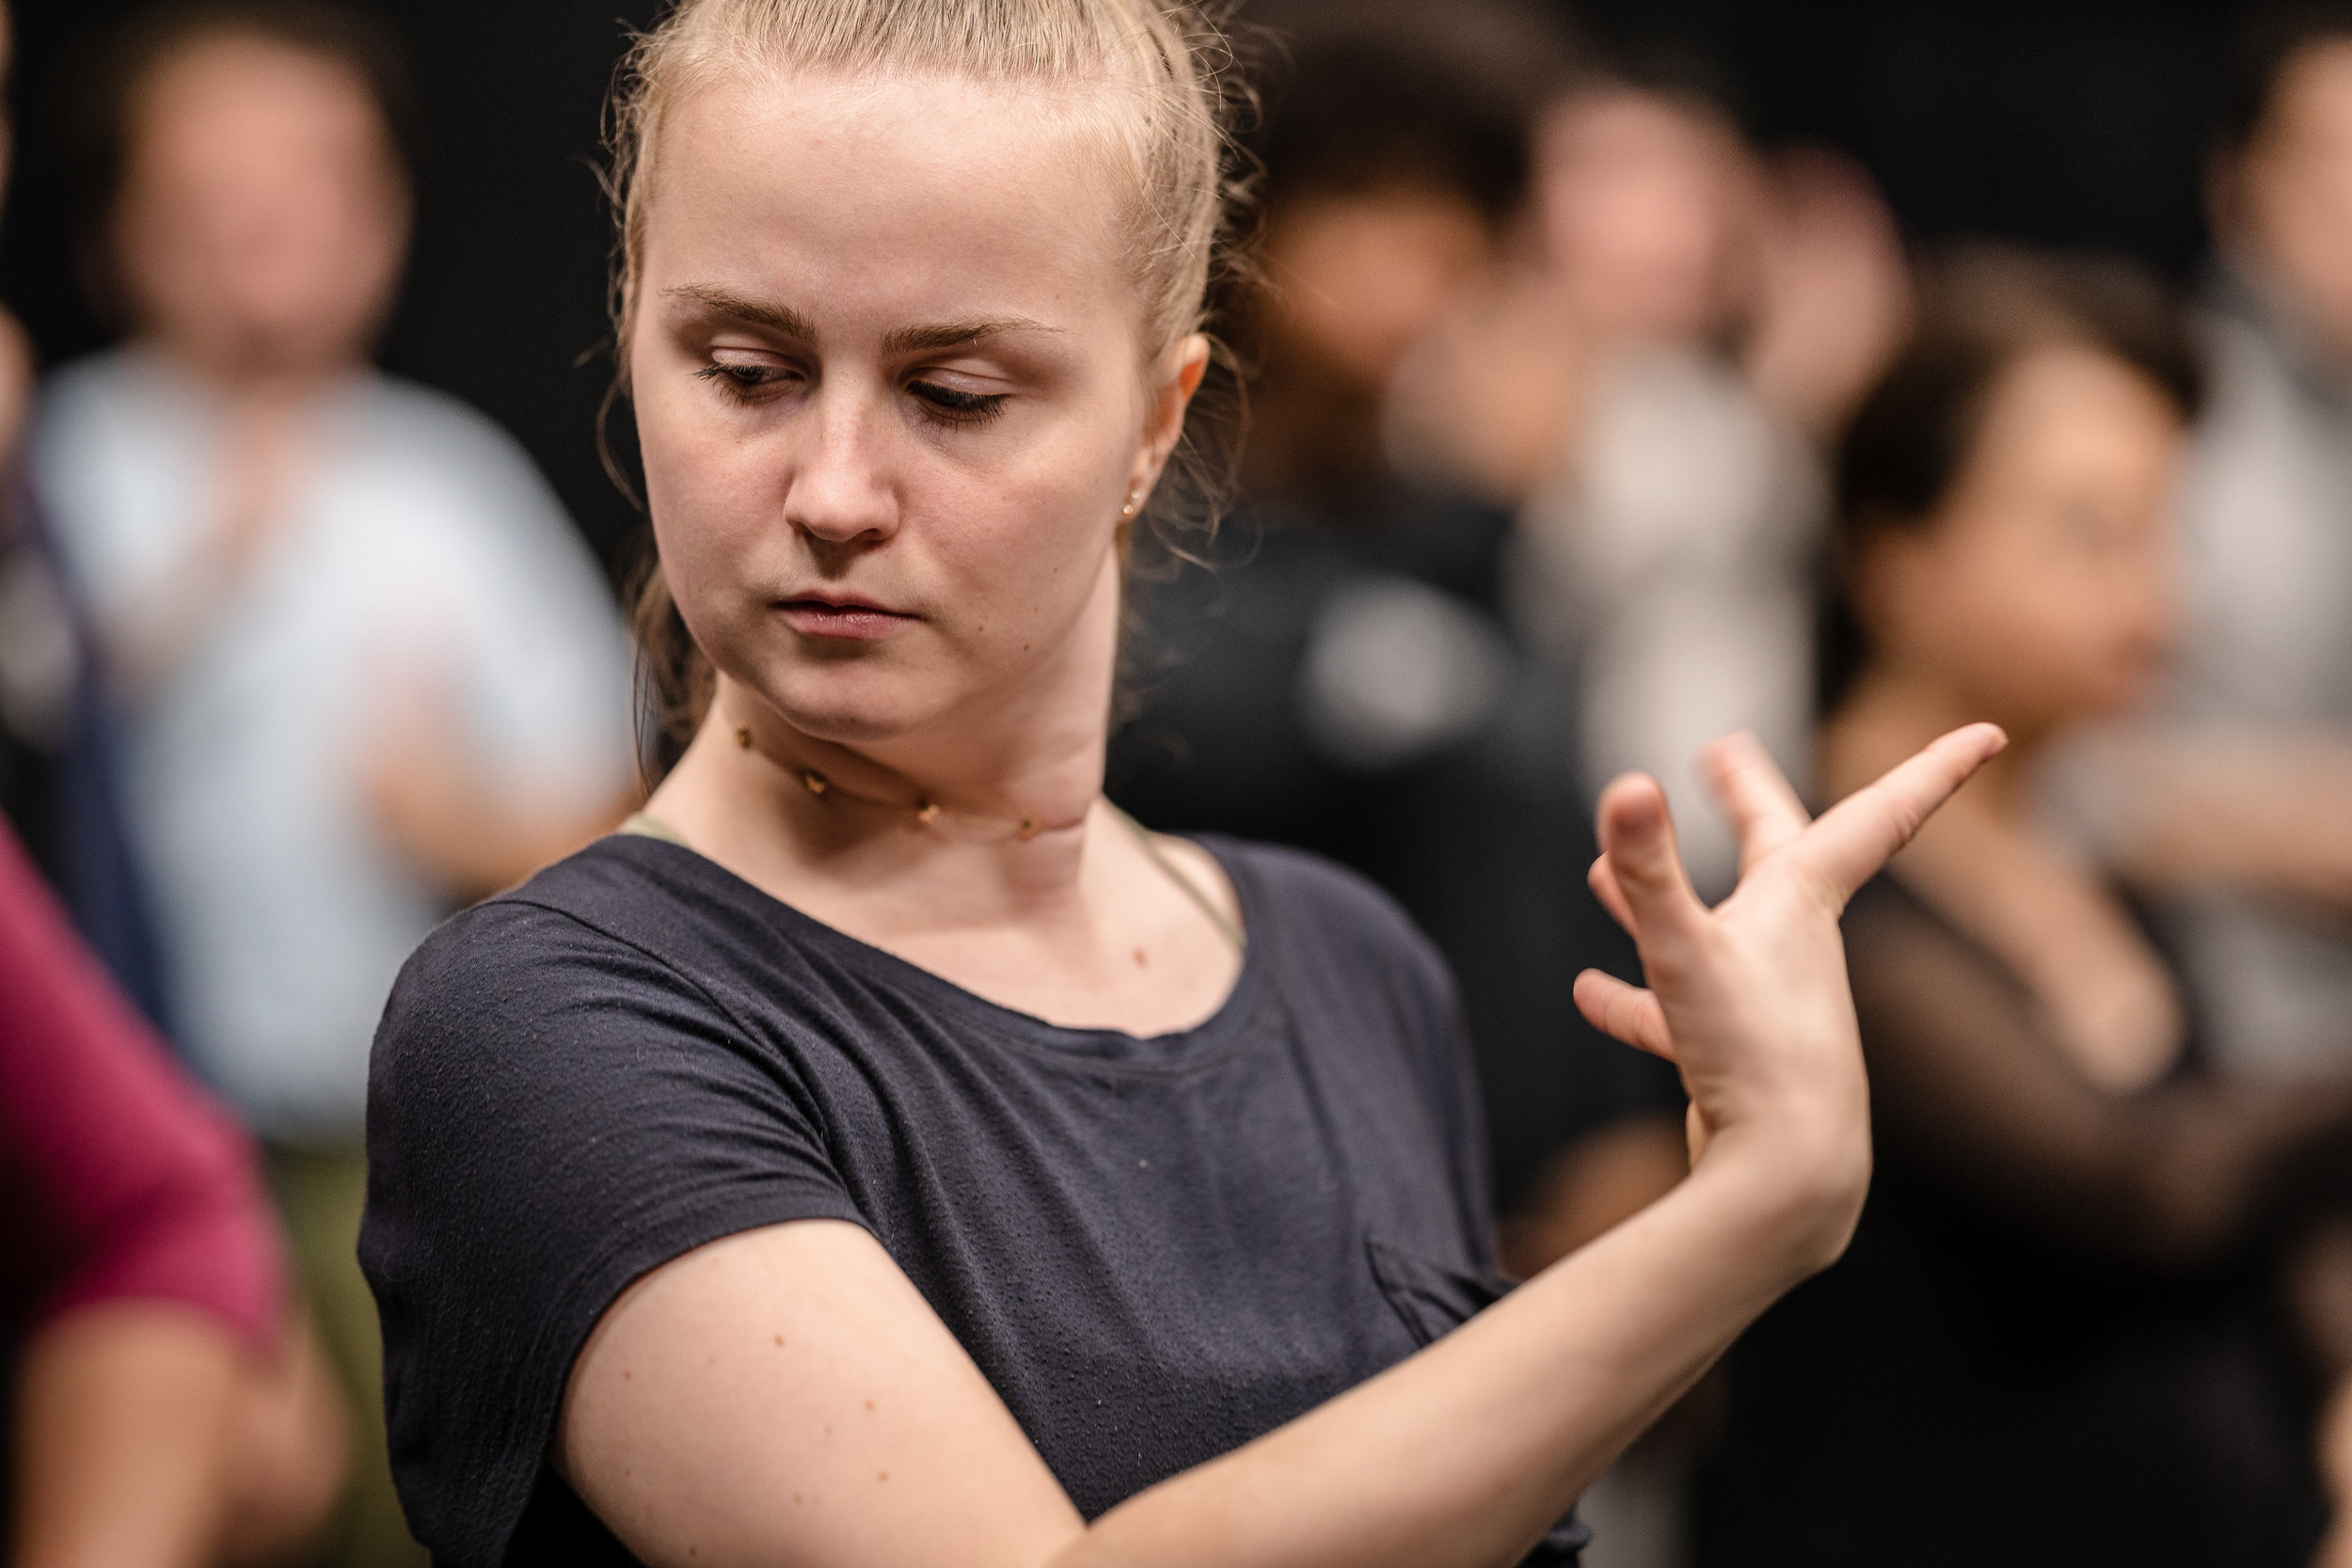 Josefin Östevik, 21, an SMC Musical Theatre major from Västeras, Sweden, rehearses dance choreography for the SMC production of Flamenco Macbeth at the SMC Studio Stage on Thursday, March 21, 2019. Flamenco Macbeth is an adaptation of Shakespeare's Macbeth by SMC Theatre Arts department chair Perviz Sawoski. The play will be performed at the SMC Studio Stage, a 100-seat thrust stage, from April 26 through May 5, 2019. (Glenn Zucman/The Corsair)